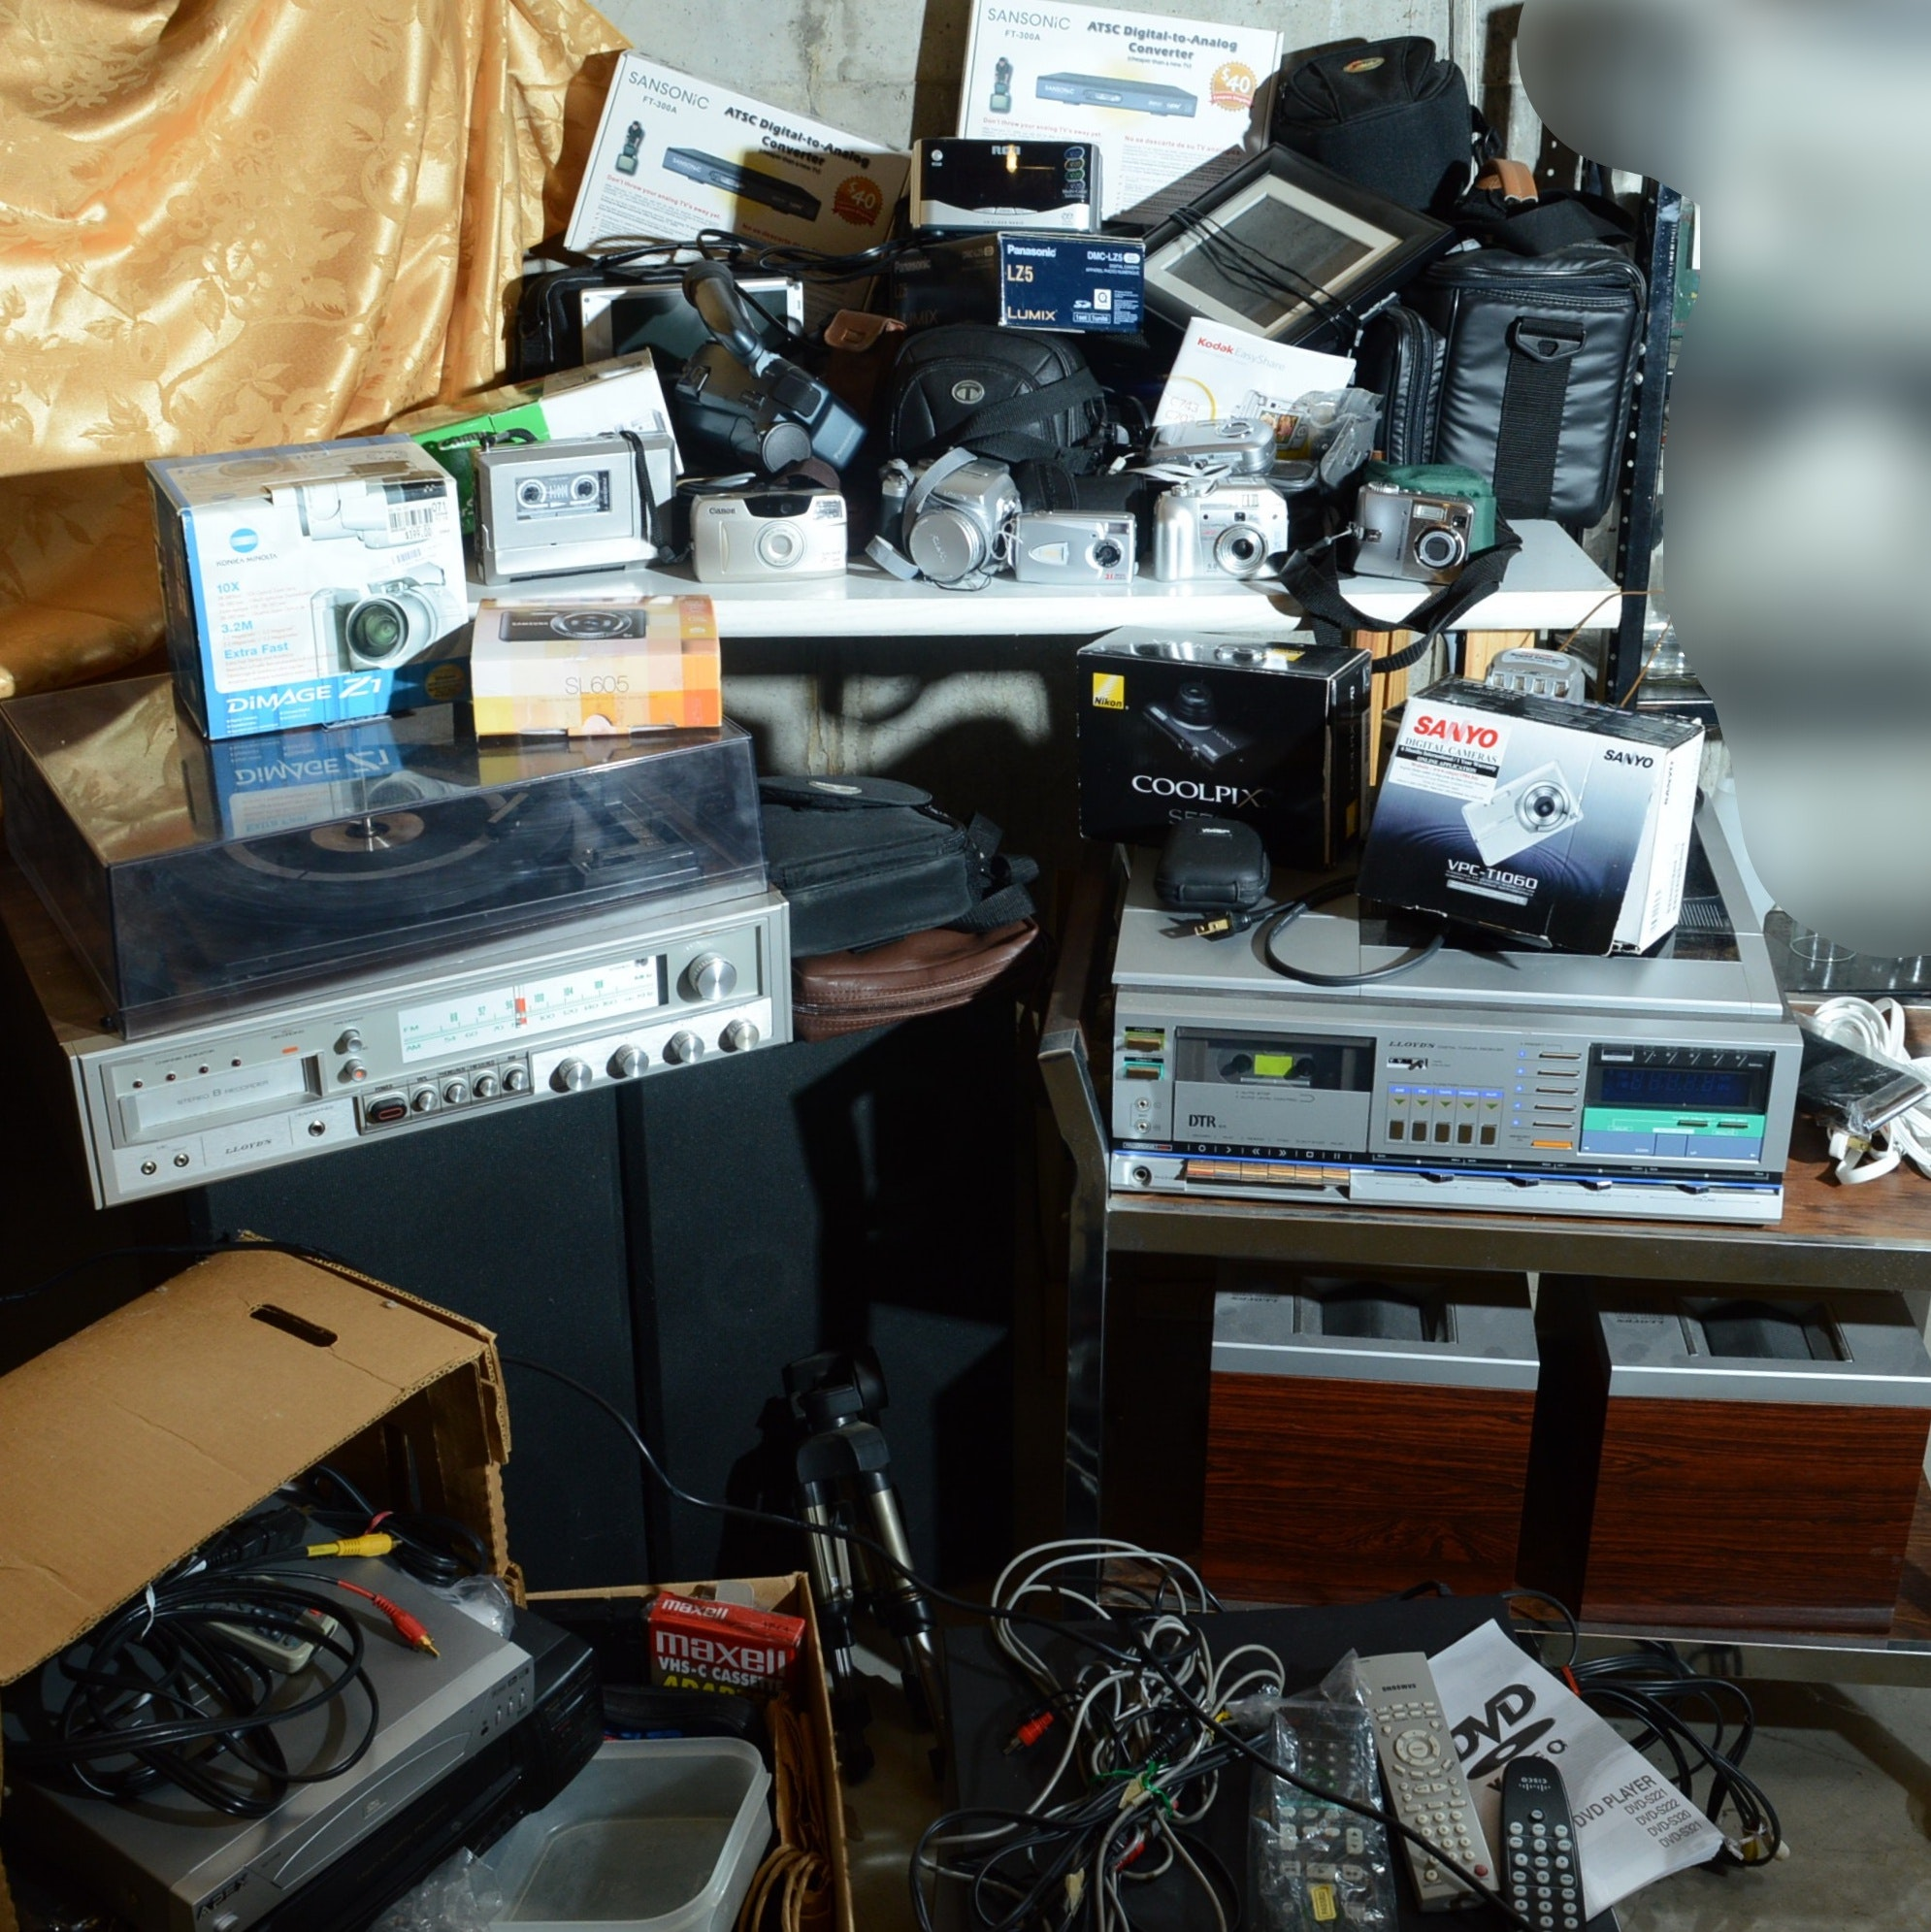 Vintage Stereo Components, Camera and Other Electronics